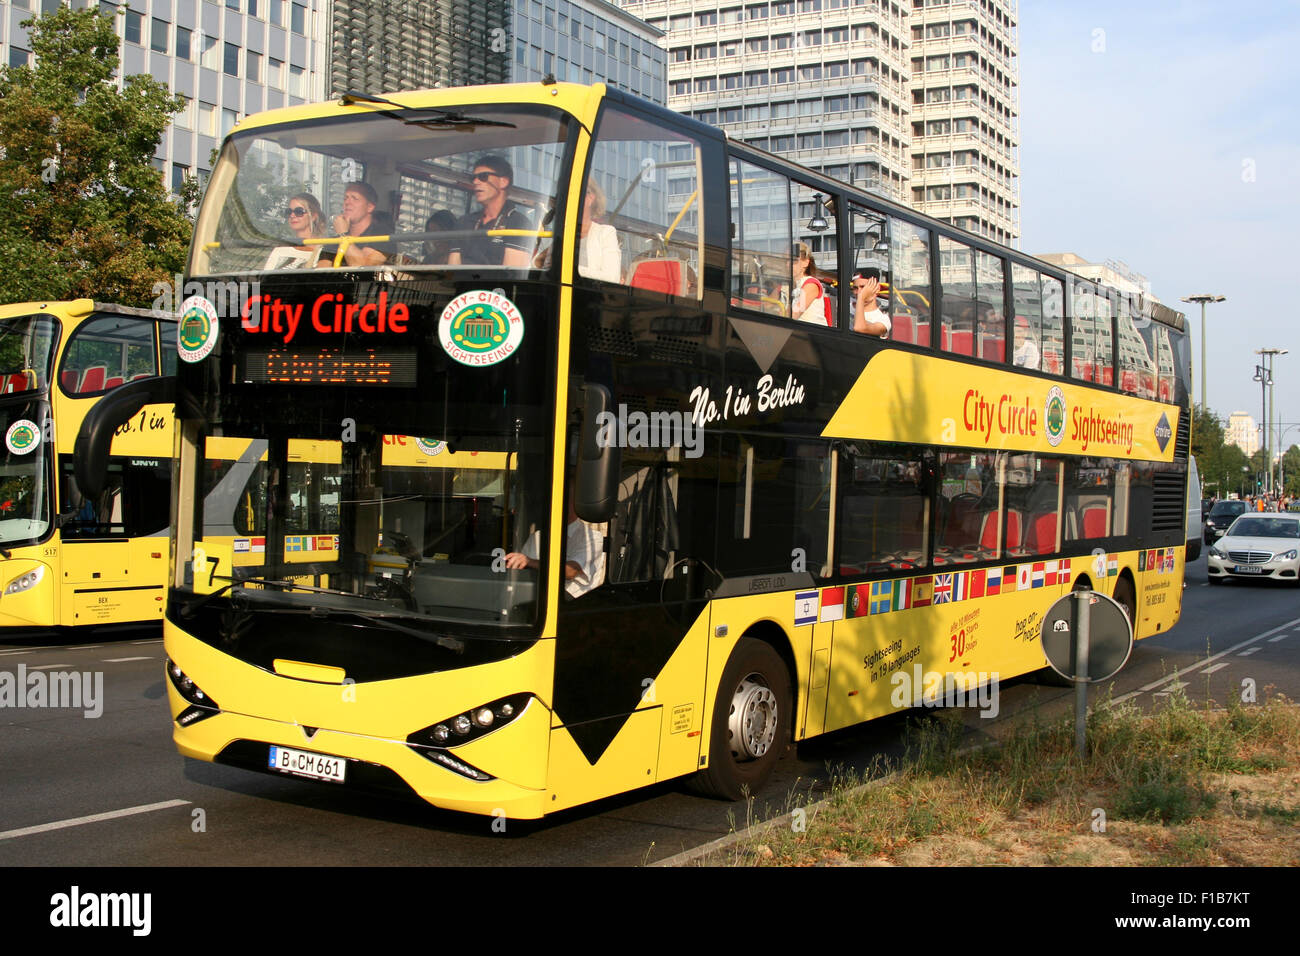 city circle tour bus open top bus berlin yellow stock photo royalty free image 86914012 alamy. Black Bedroom Furniture Sets. Home Design Ideas